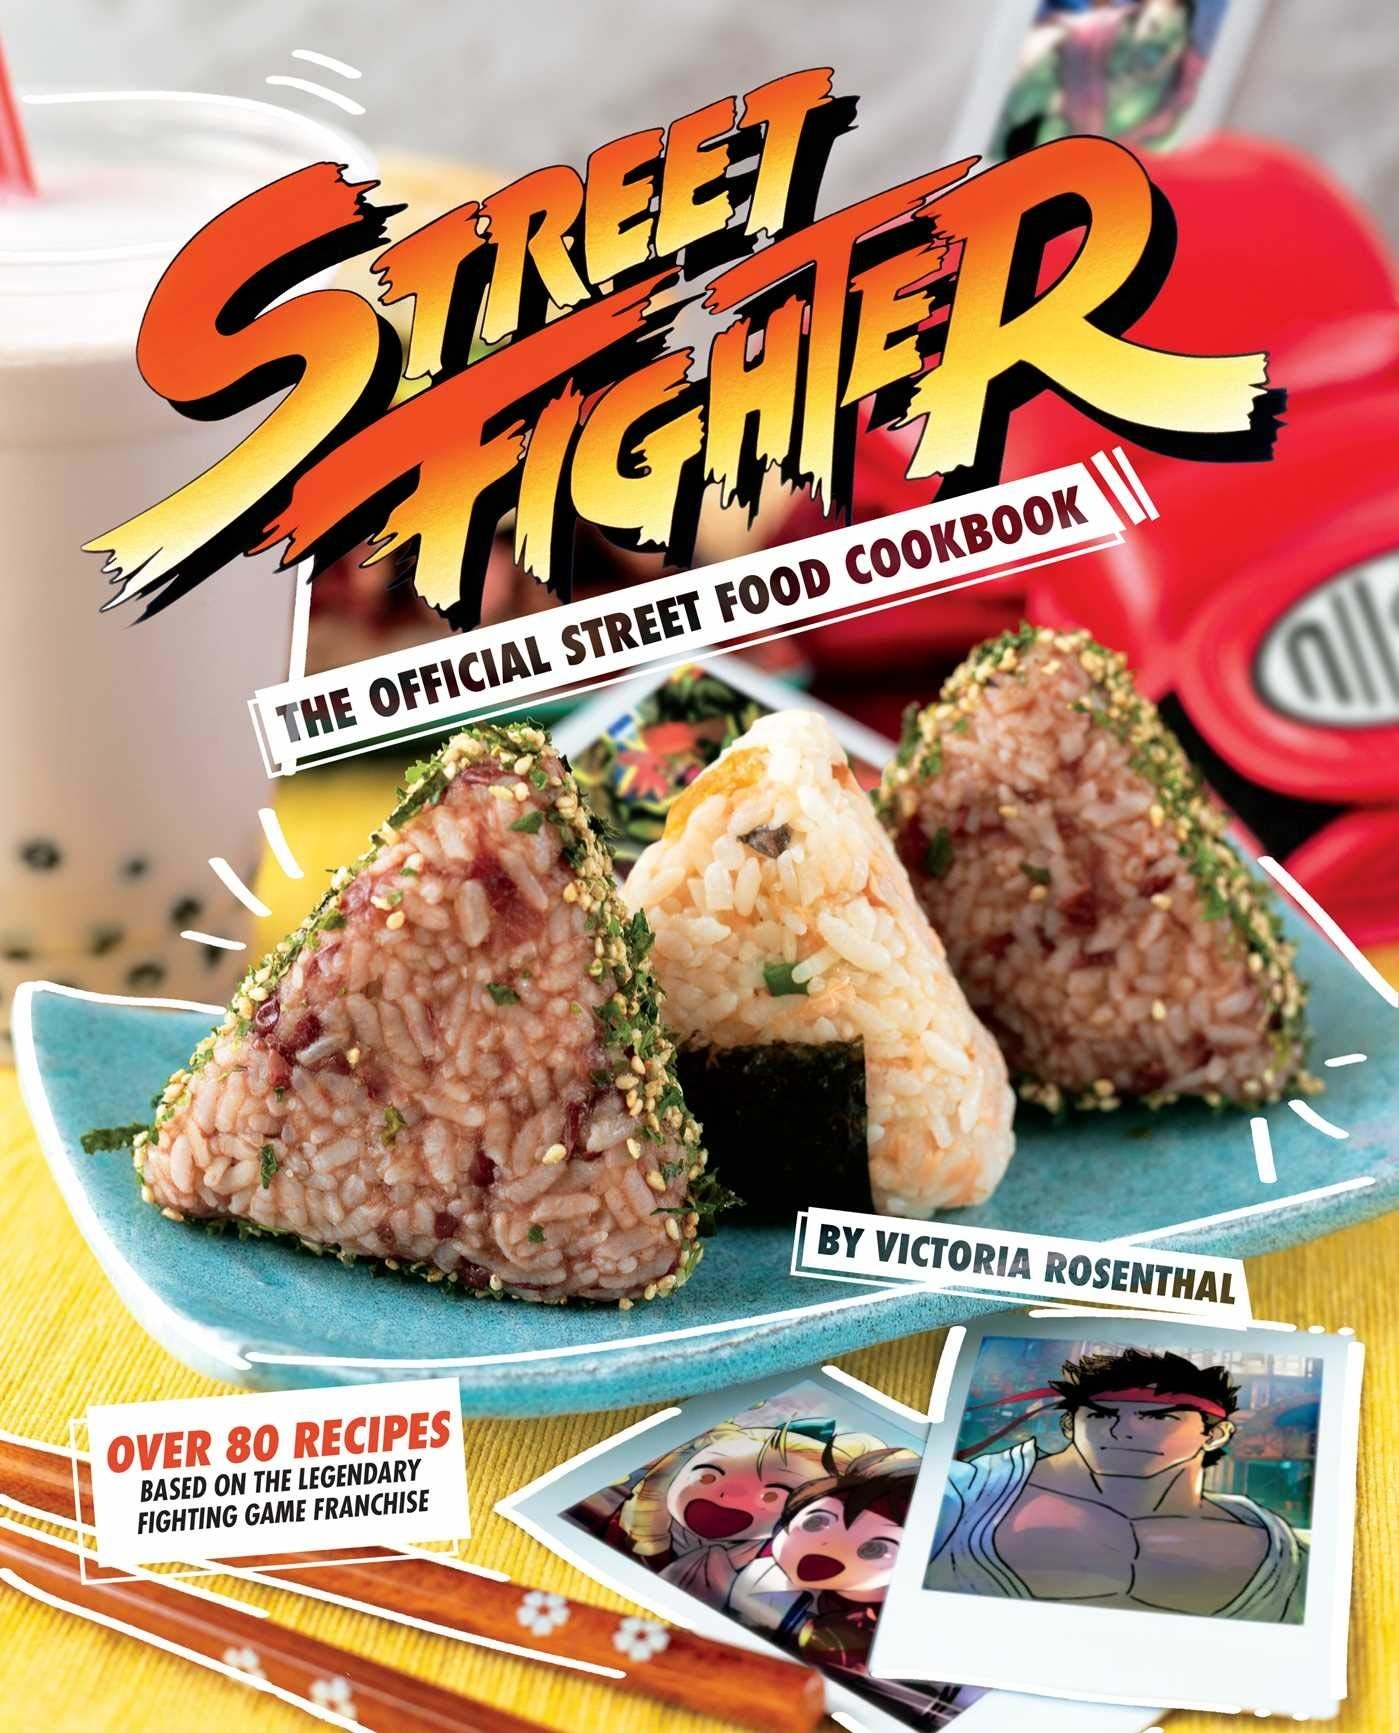 The cover ofStreet Fighter: The Official Street Food Cookbook